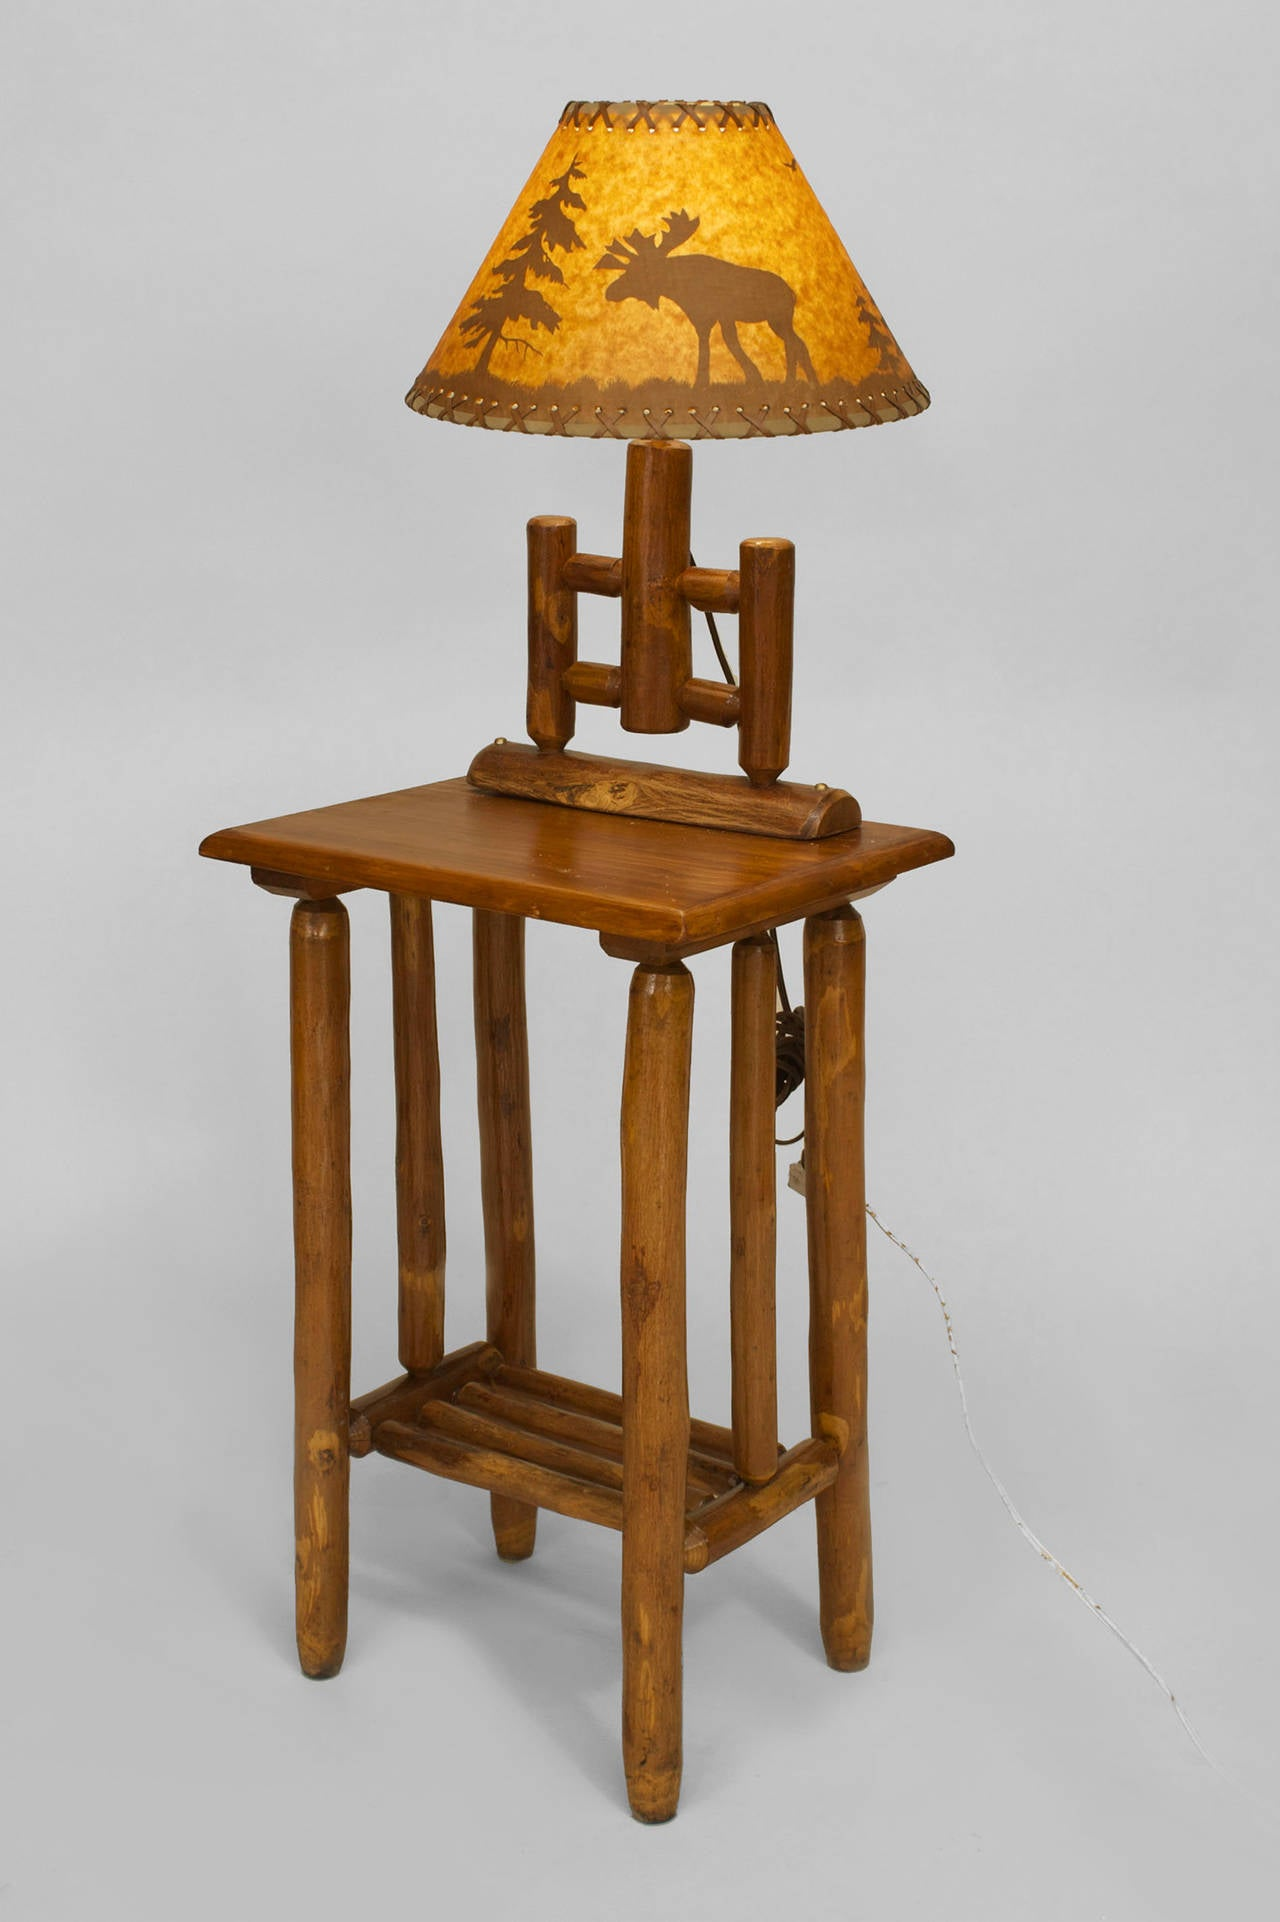 Small 20th C American Rustic End Table With Mounted Lamp